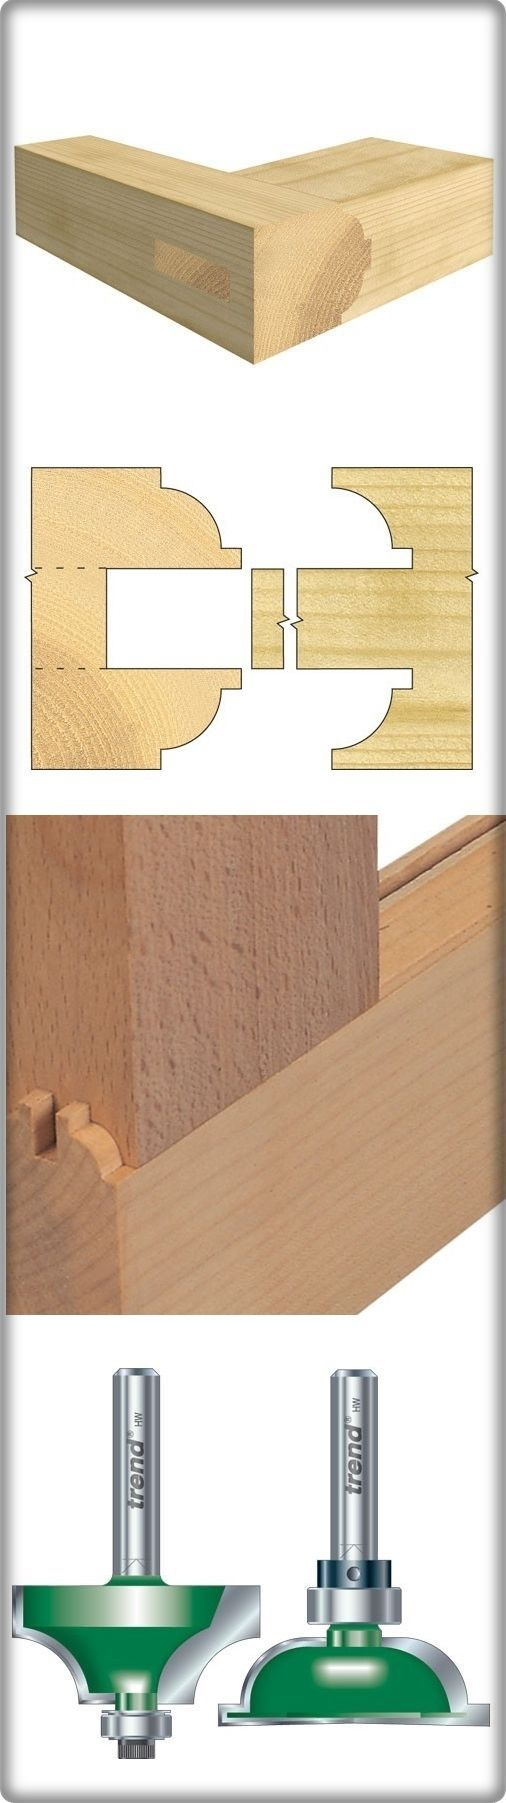 For door and window construction, decorative panelling and many other joinery applications... #Shoulder scribe/profile #set (http://www.woodfordtooling.com/craftpro-router-cutters/ovolo-jointers-scribers/ovolo-bar-set/shoulder-scribe-profile-set.html):